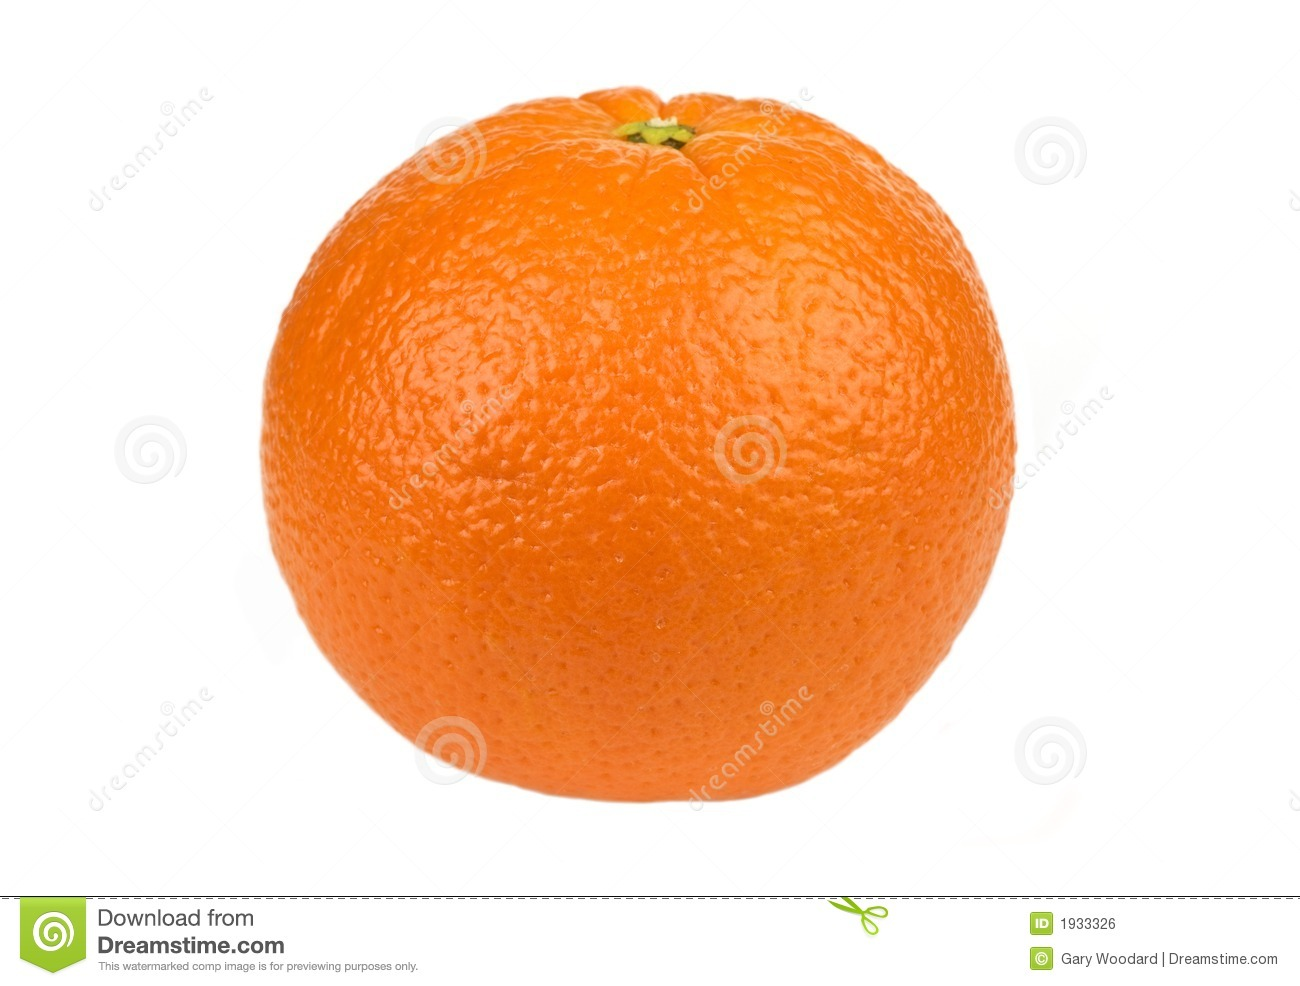 how to tell if an orange is ripe